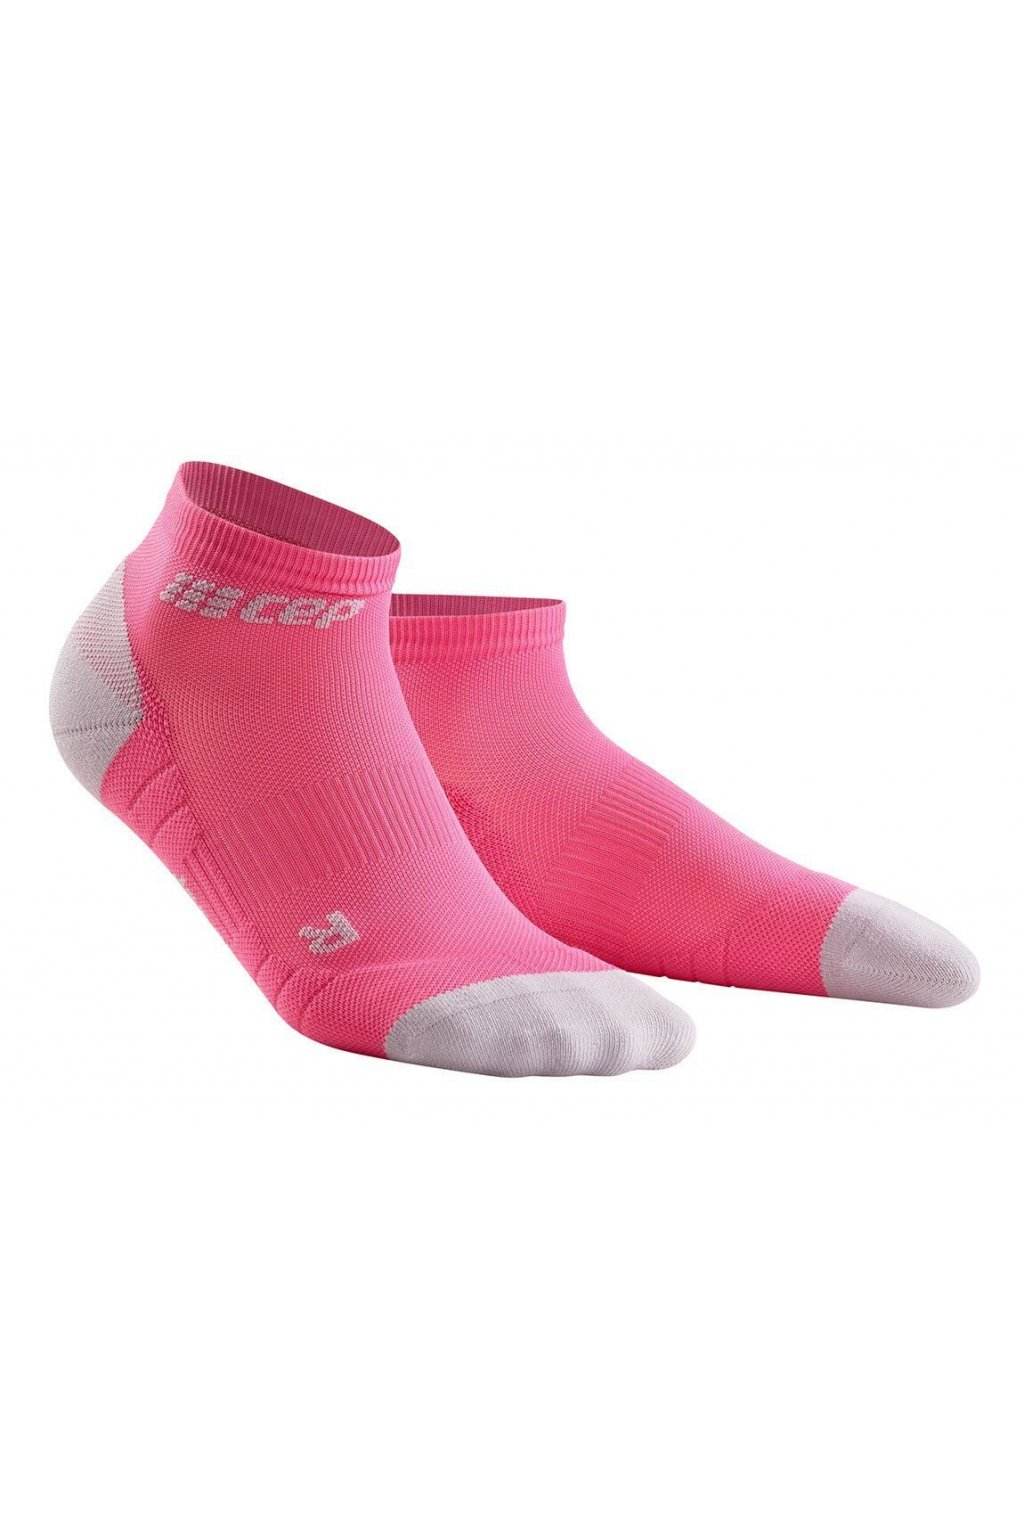 1280x1280 Compression Low Cut Socks 3.0 rose light grey WP4AGX w pair front